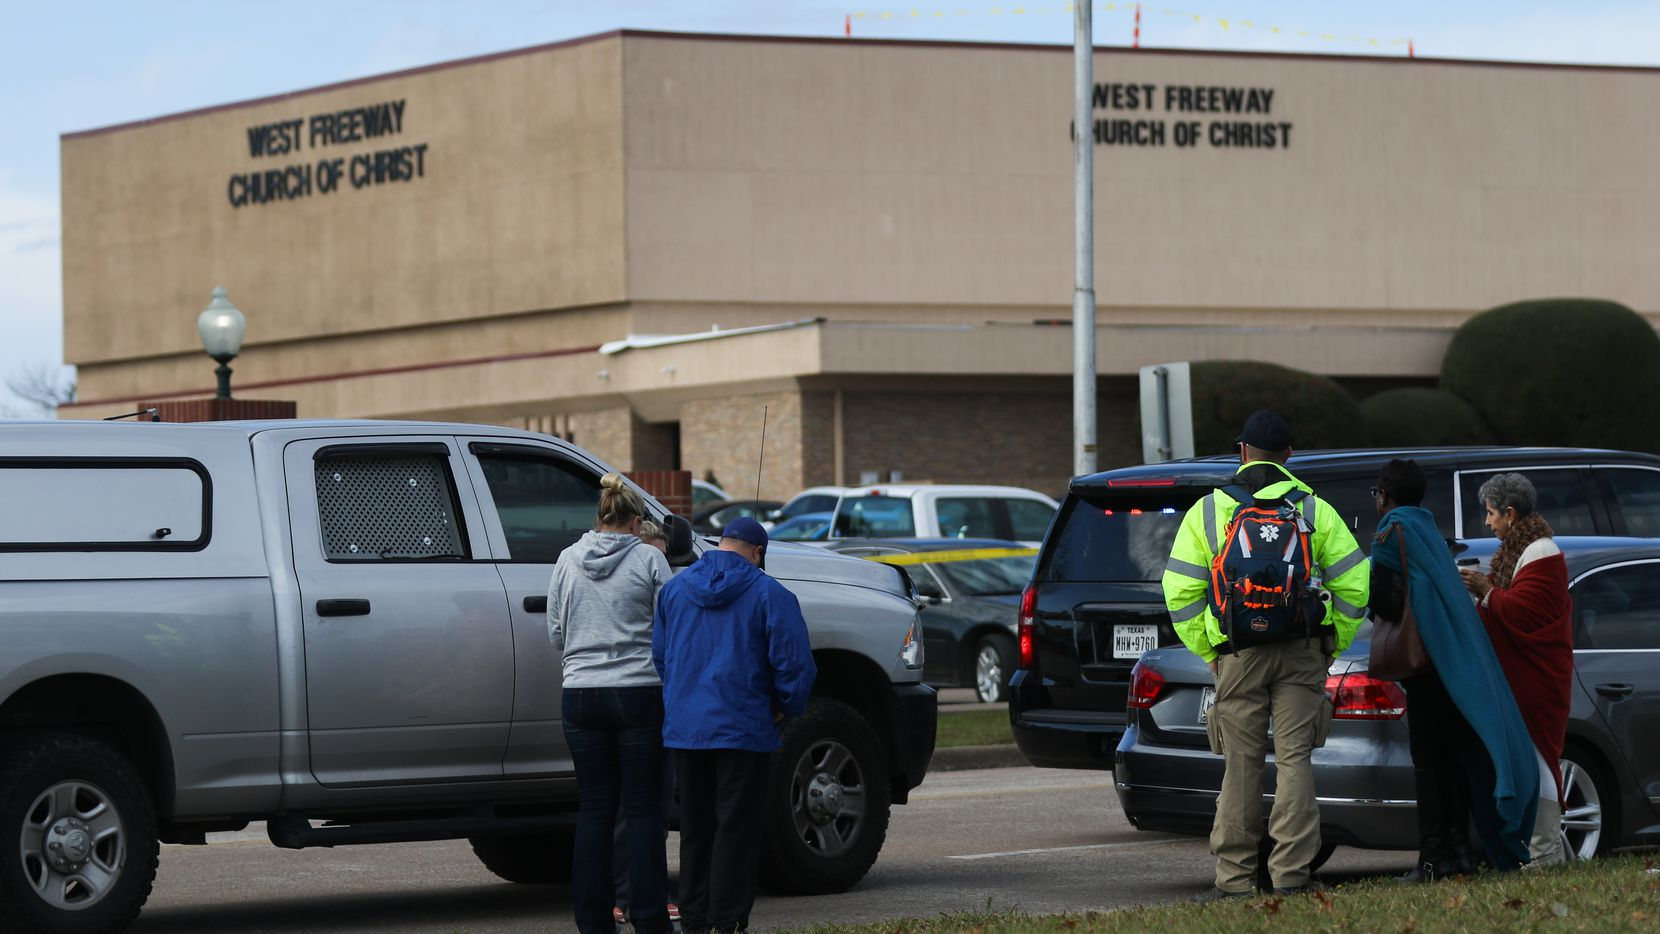 The gunman fatally shot two men before a member of the church's volunteer security force killed him.